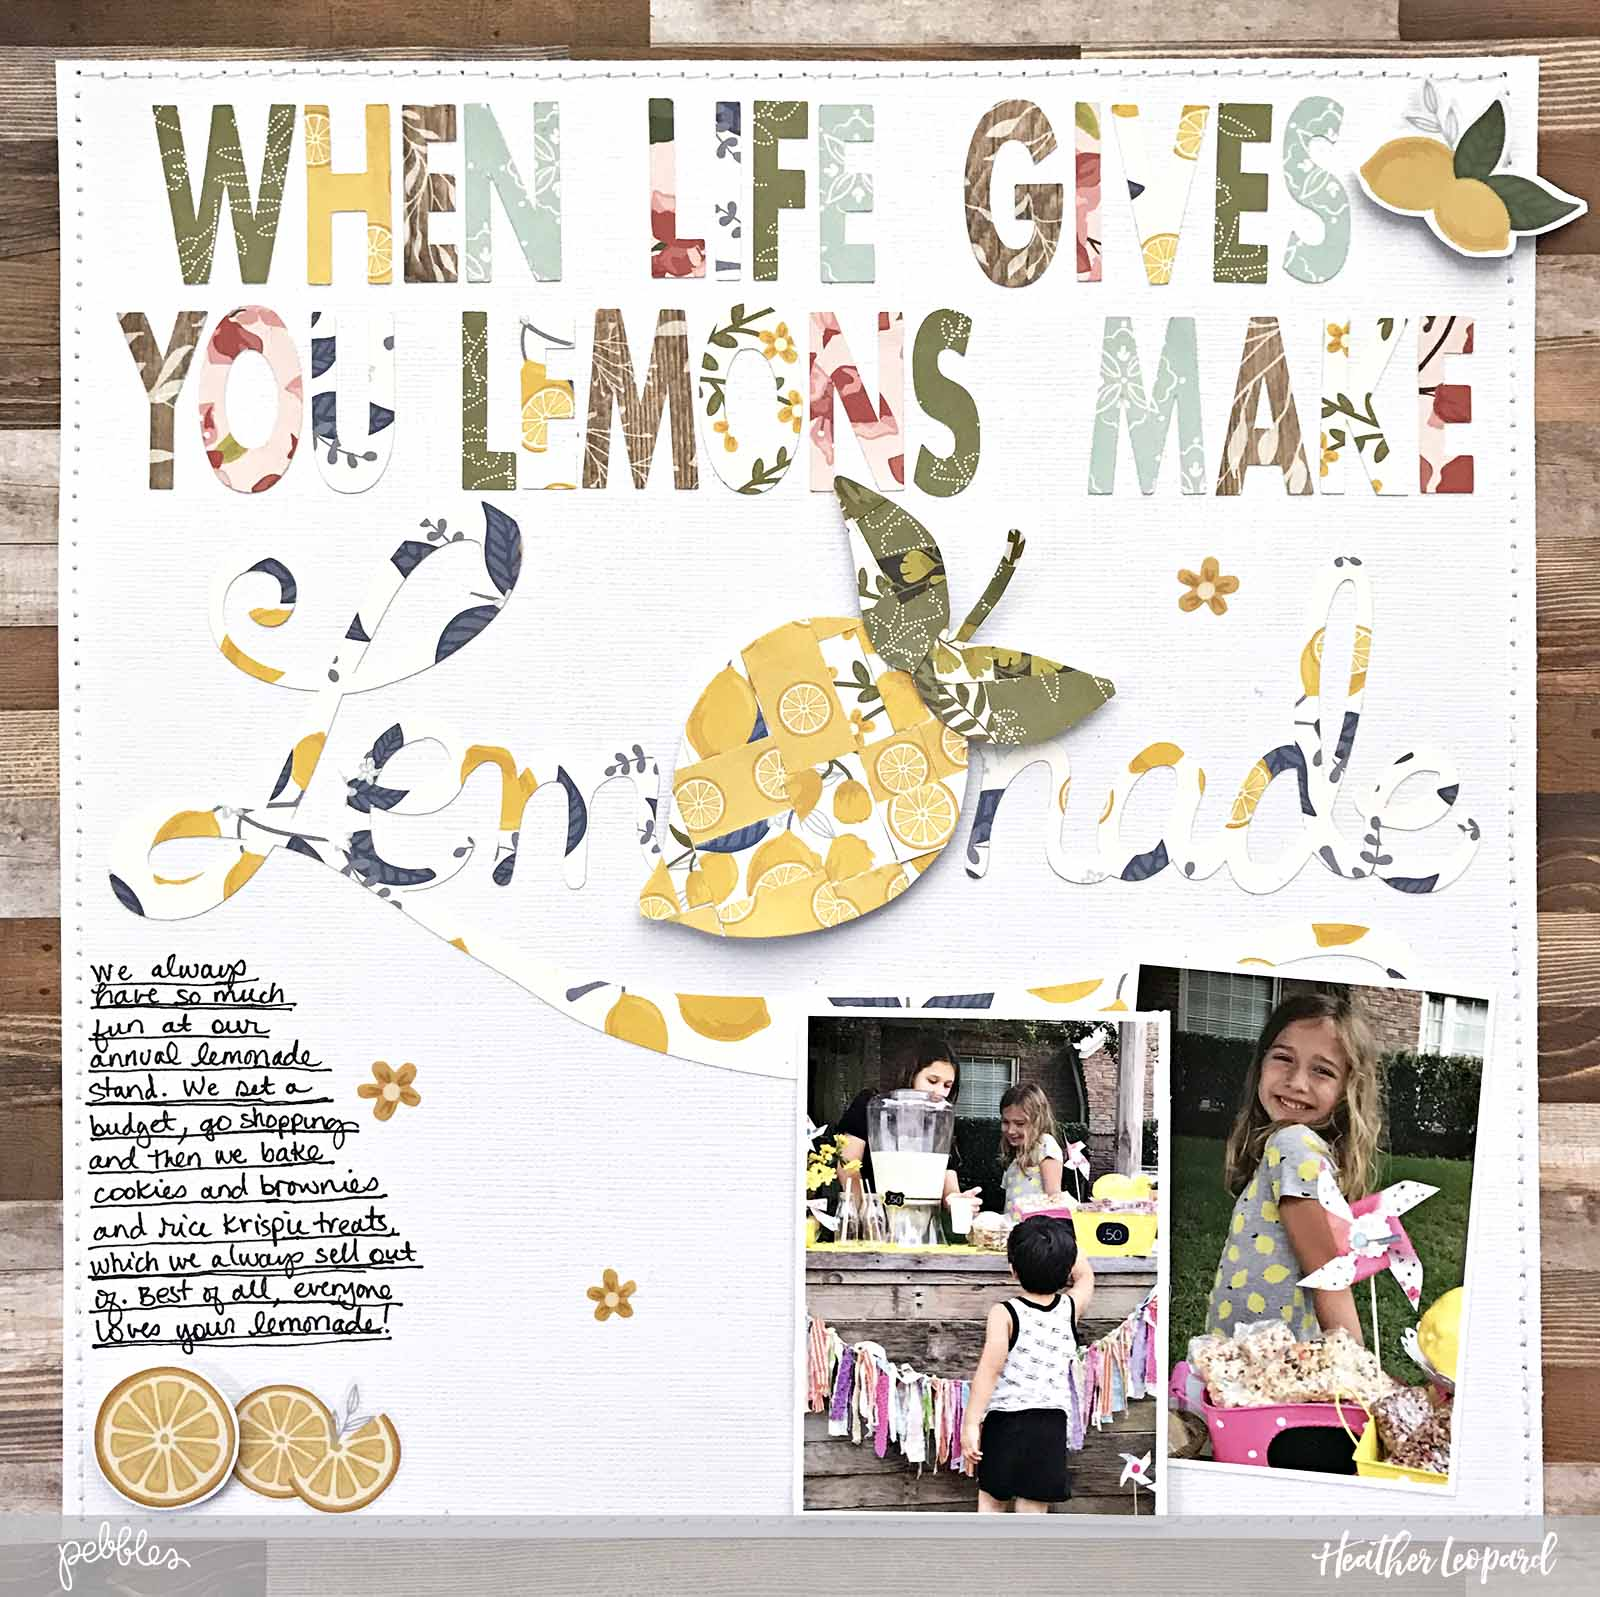 Make Lemonade Scrapbooking Layout by @heatherleopard using the @PebblesInc #jenhadfield #thesimplelife collection #scrapbooking #layout #lemonade #lemonadestand #madewithpebbles